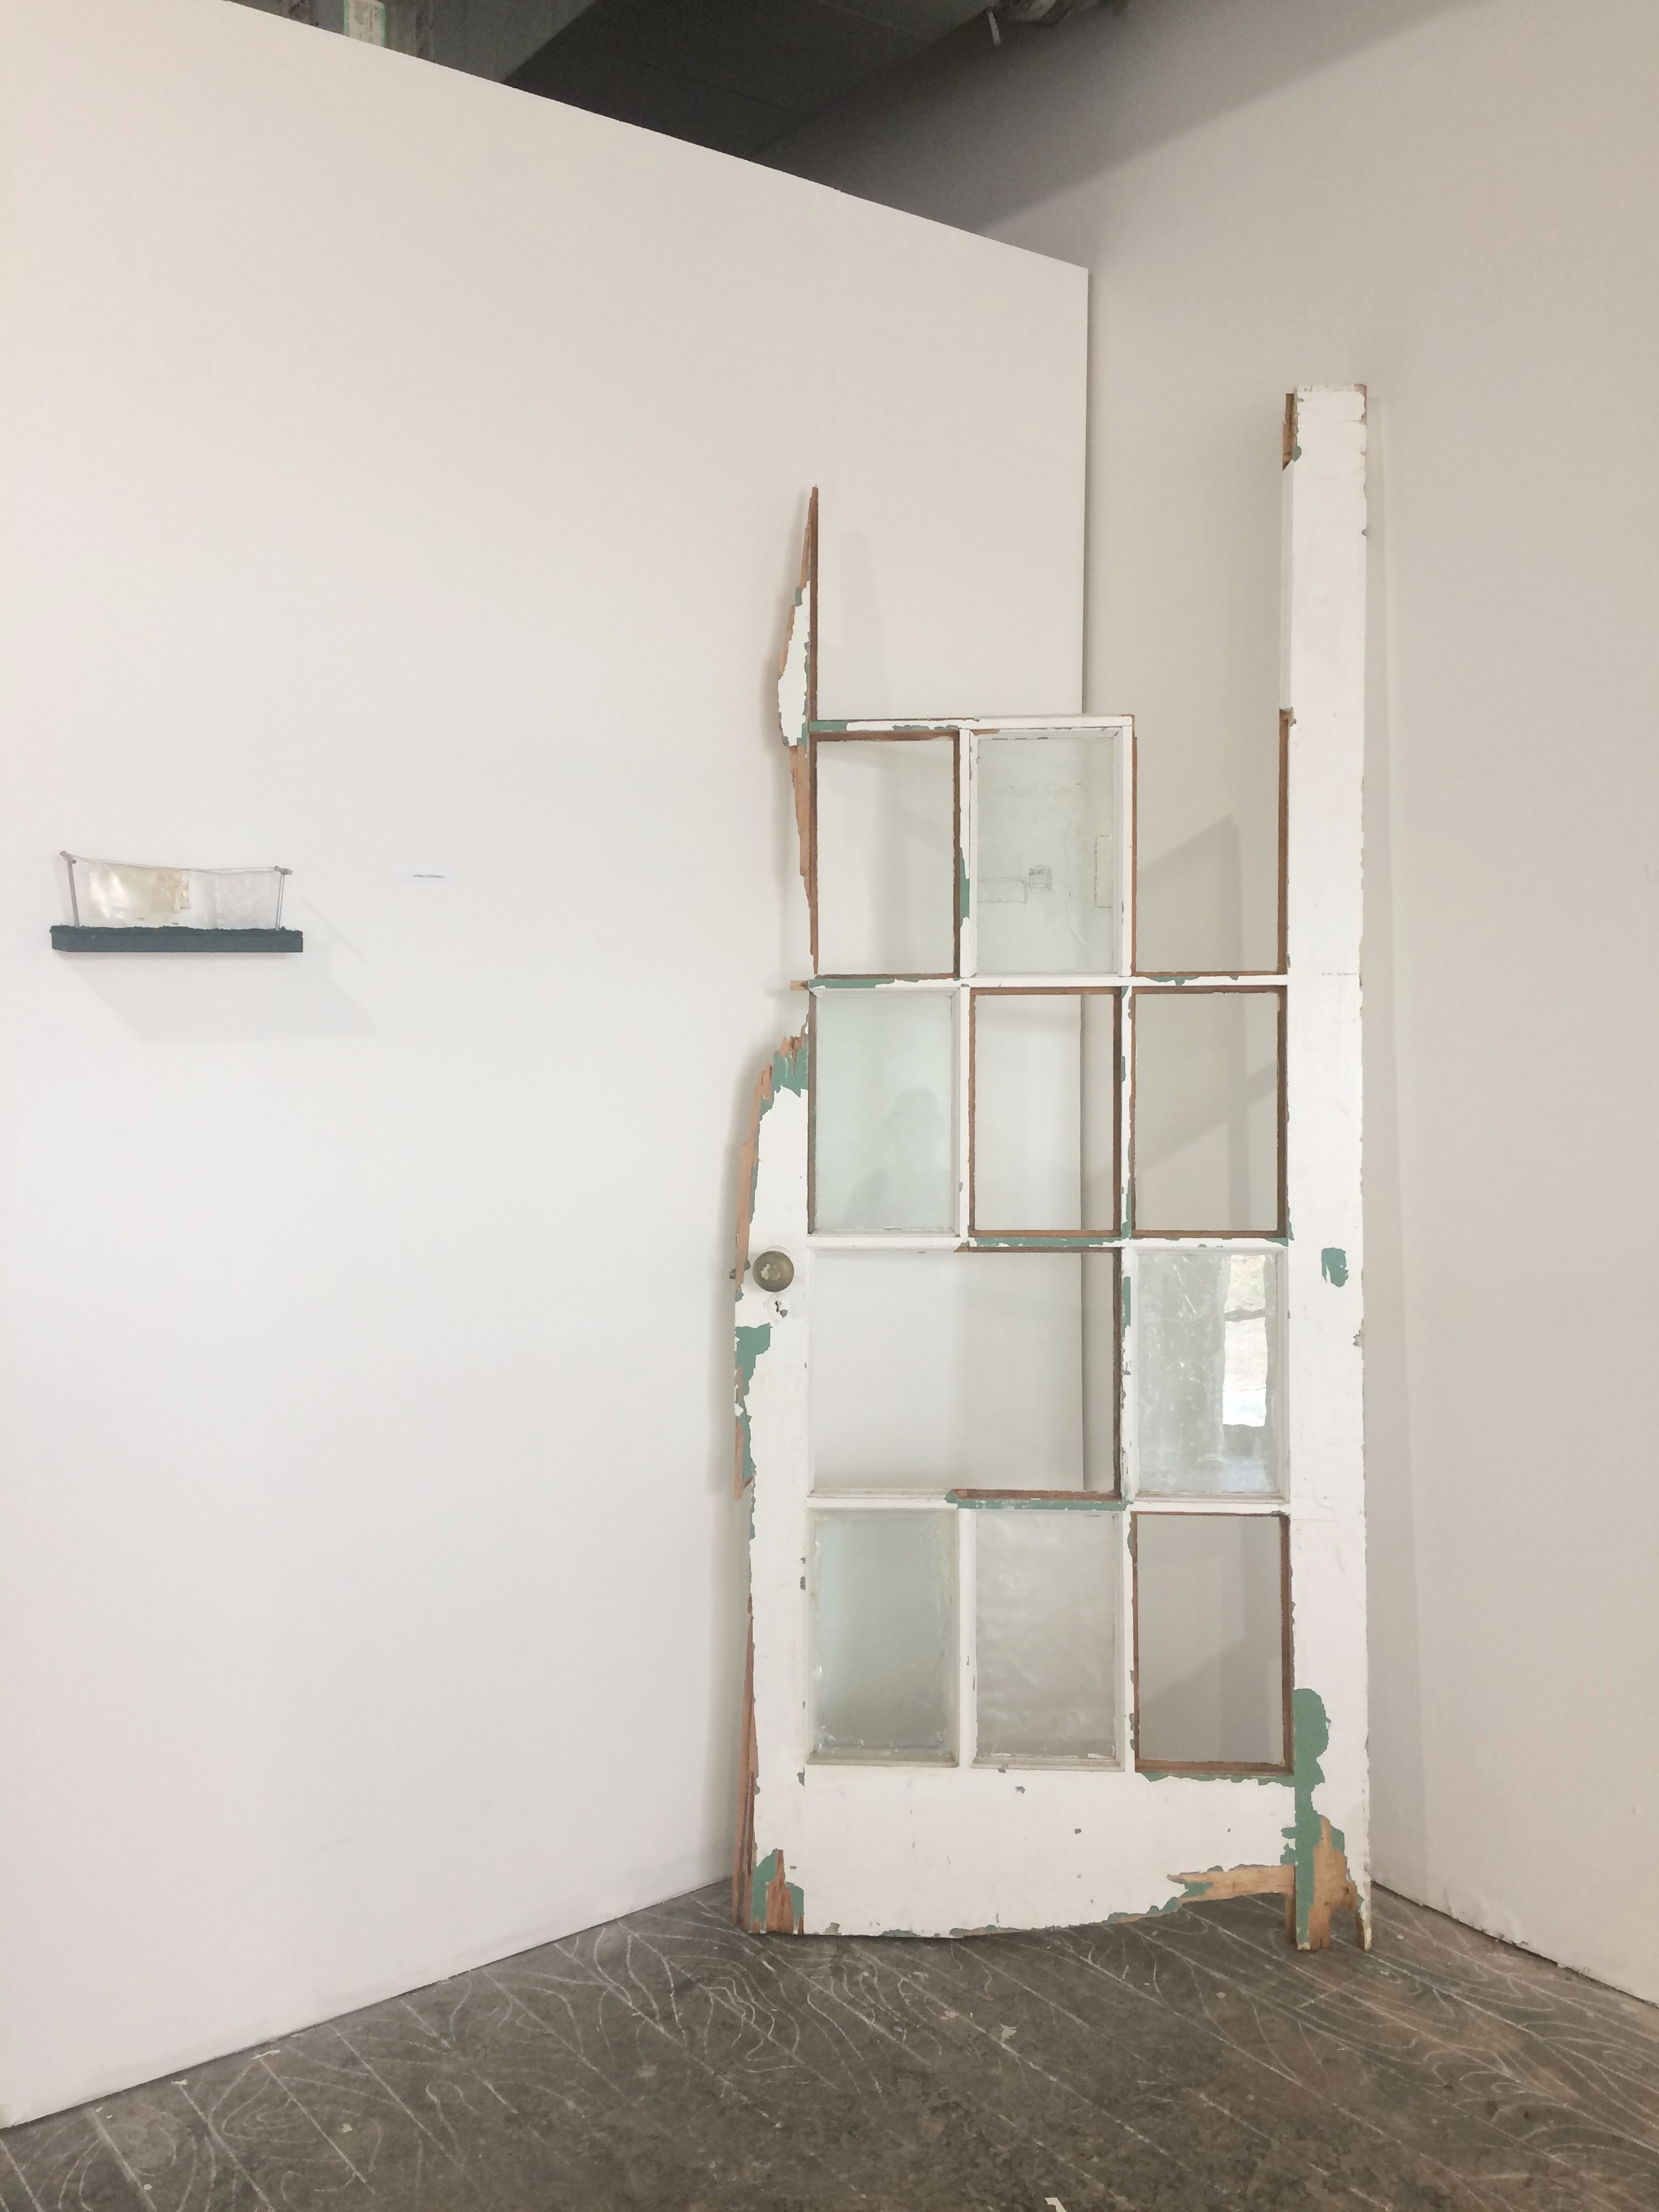 Untitled(Door), Wood, Glass, Acrylic Medium, Ink, and Thread, 2018